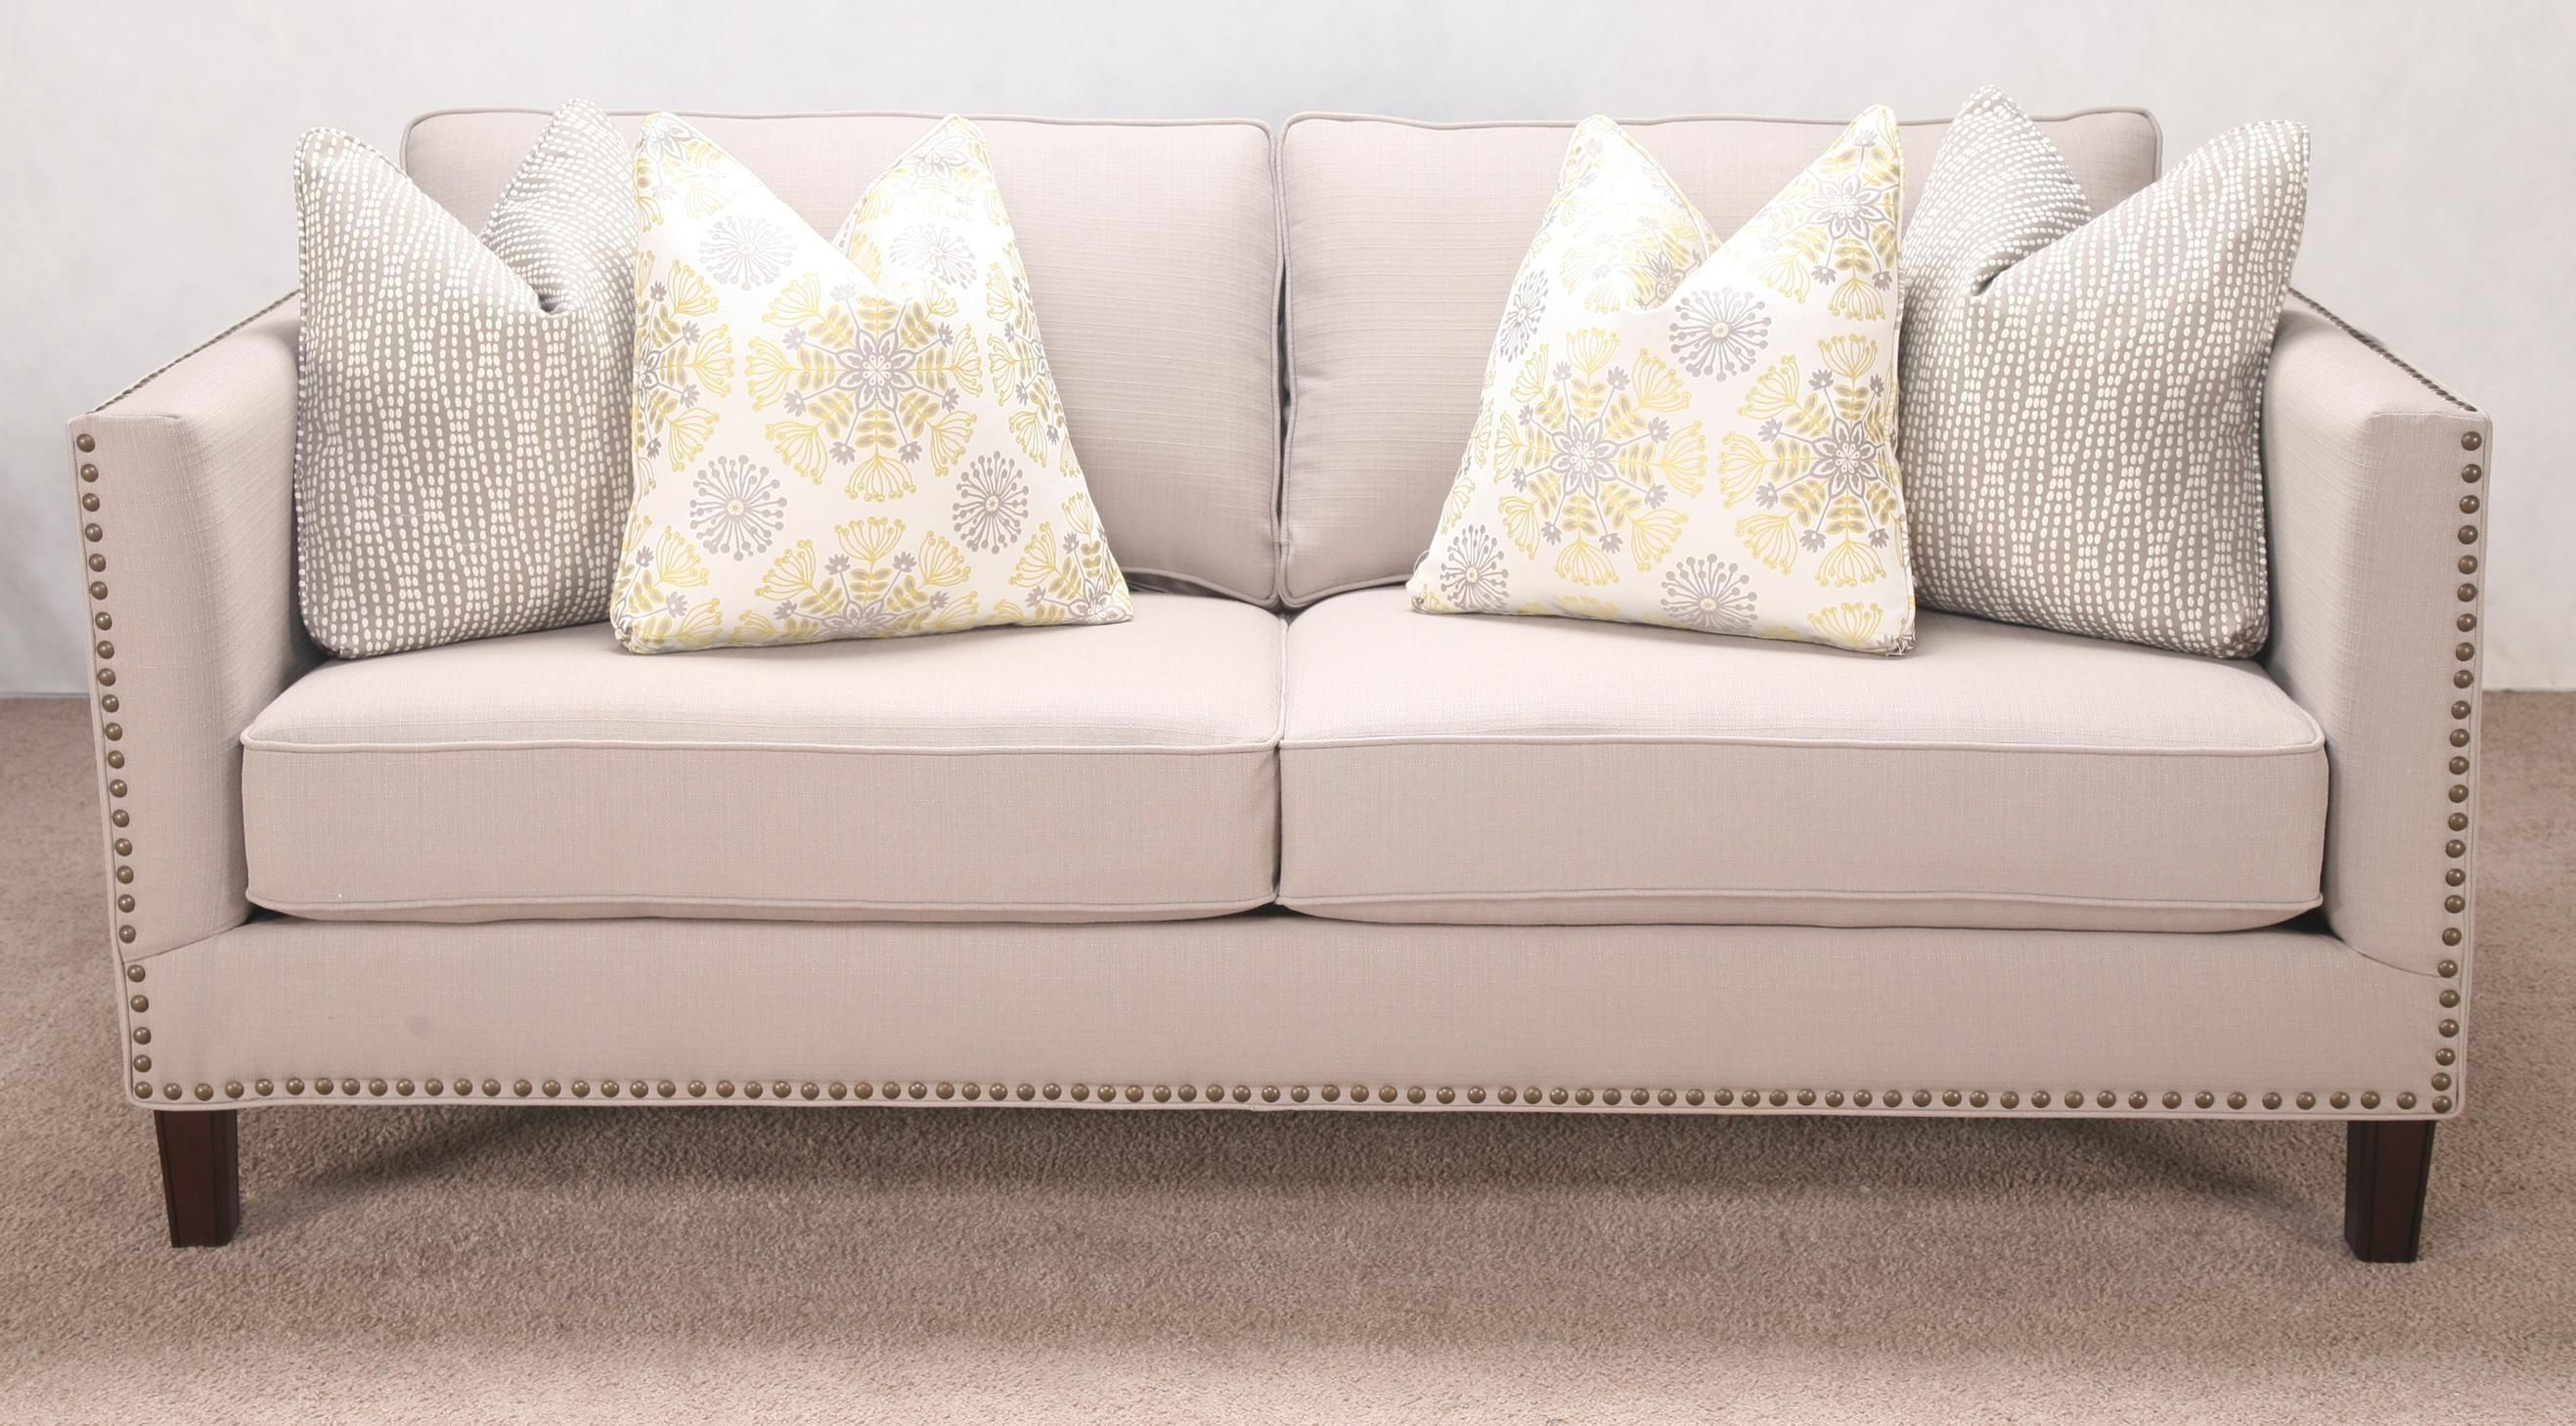 Get Comfortable Seating Without